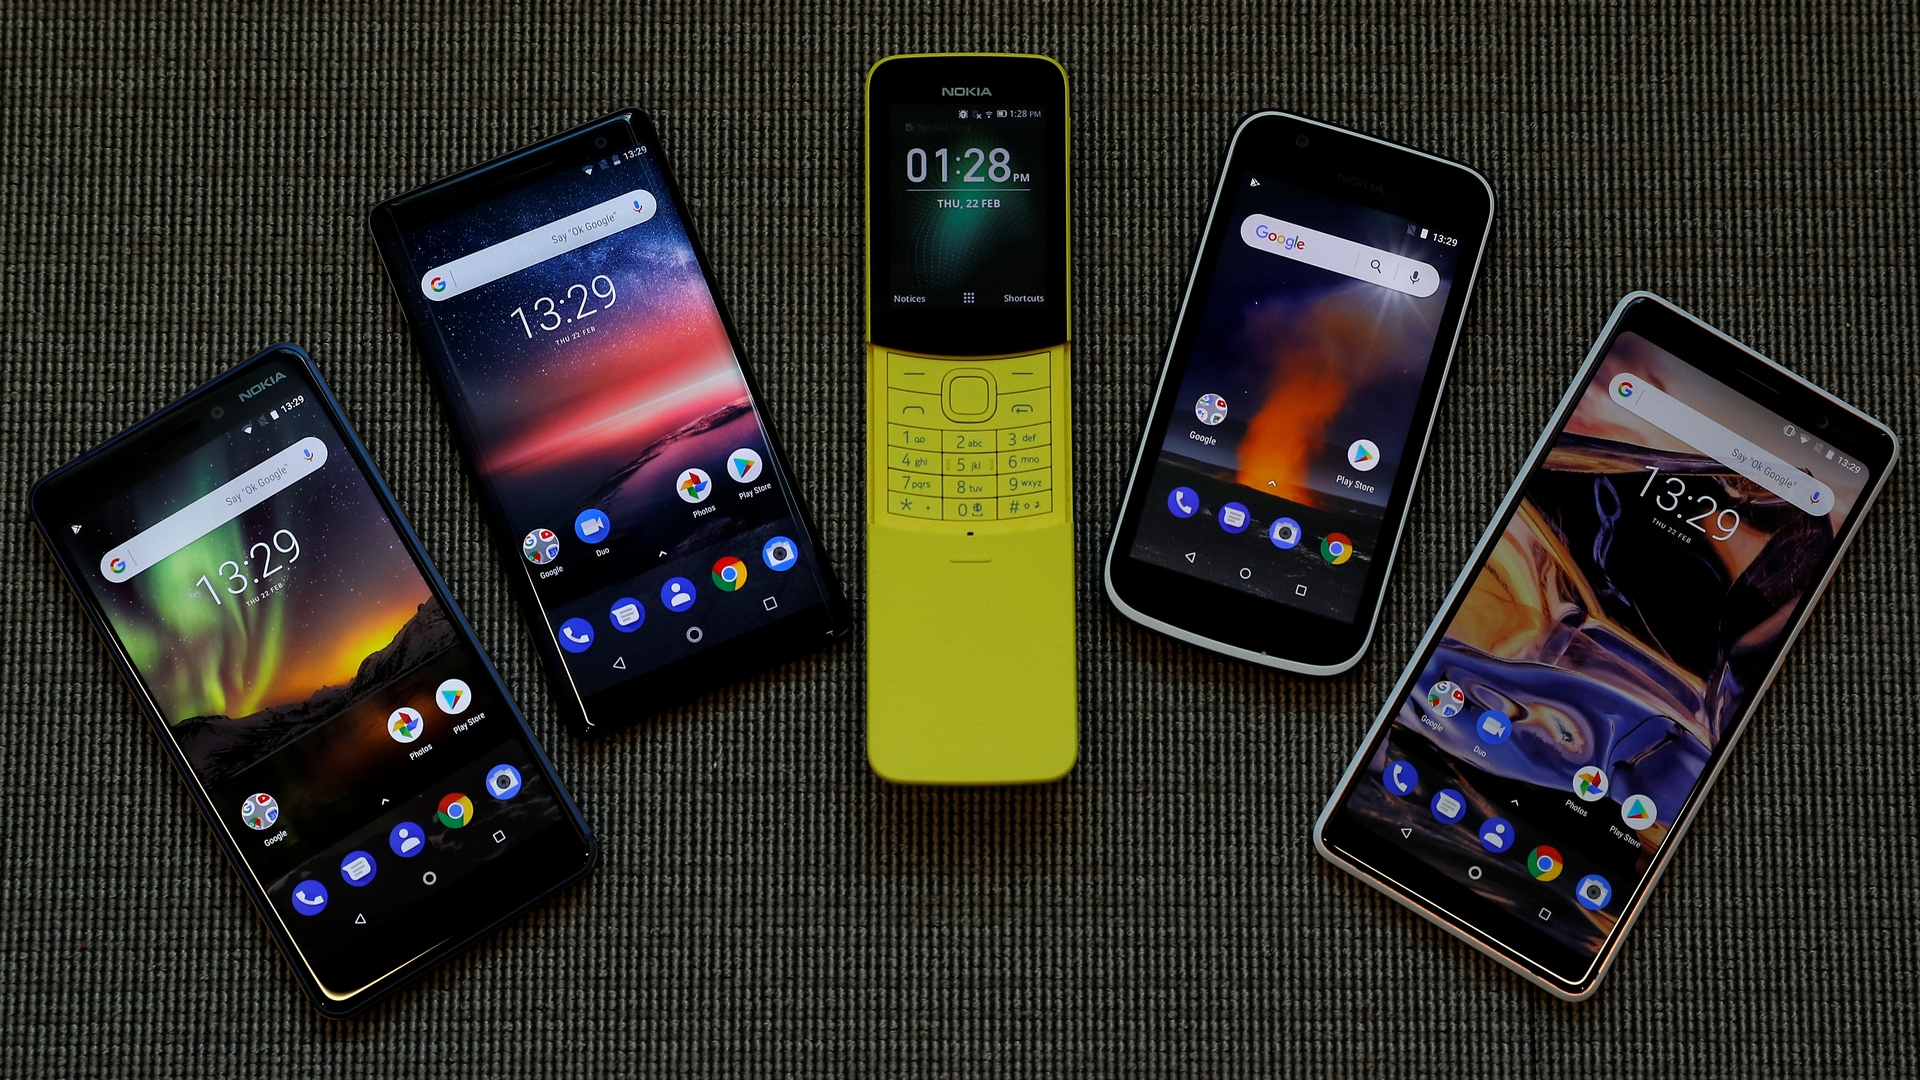 The New Nokia 6, Nokia 8 Sirocco, Nokia 8110, Nokia 1 and the Nokia 7 Plus are seen at a pre-launch event in London, Britain February 22, 2018. Picture taken February 22, 2018. REUTERS/Peter Nicholls - RC160CD74C00